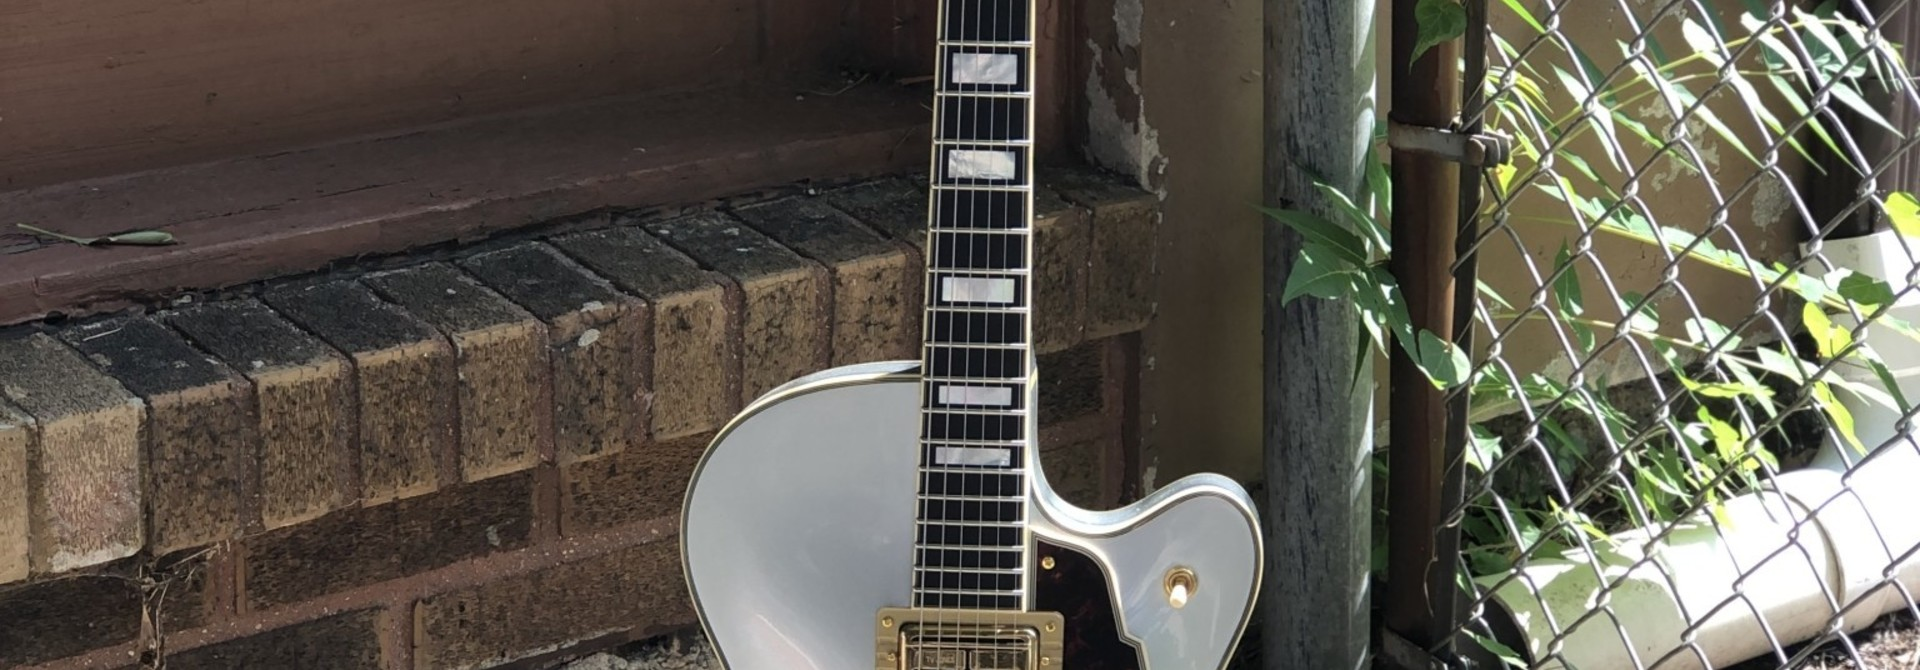 D'Angelico Deluxe DLX-175 Hollowbody - Silver